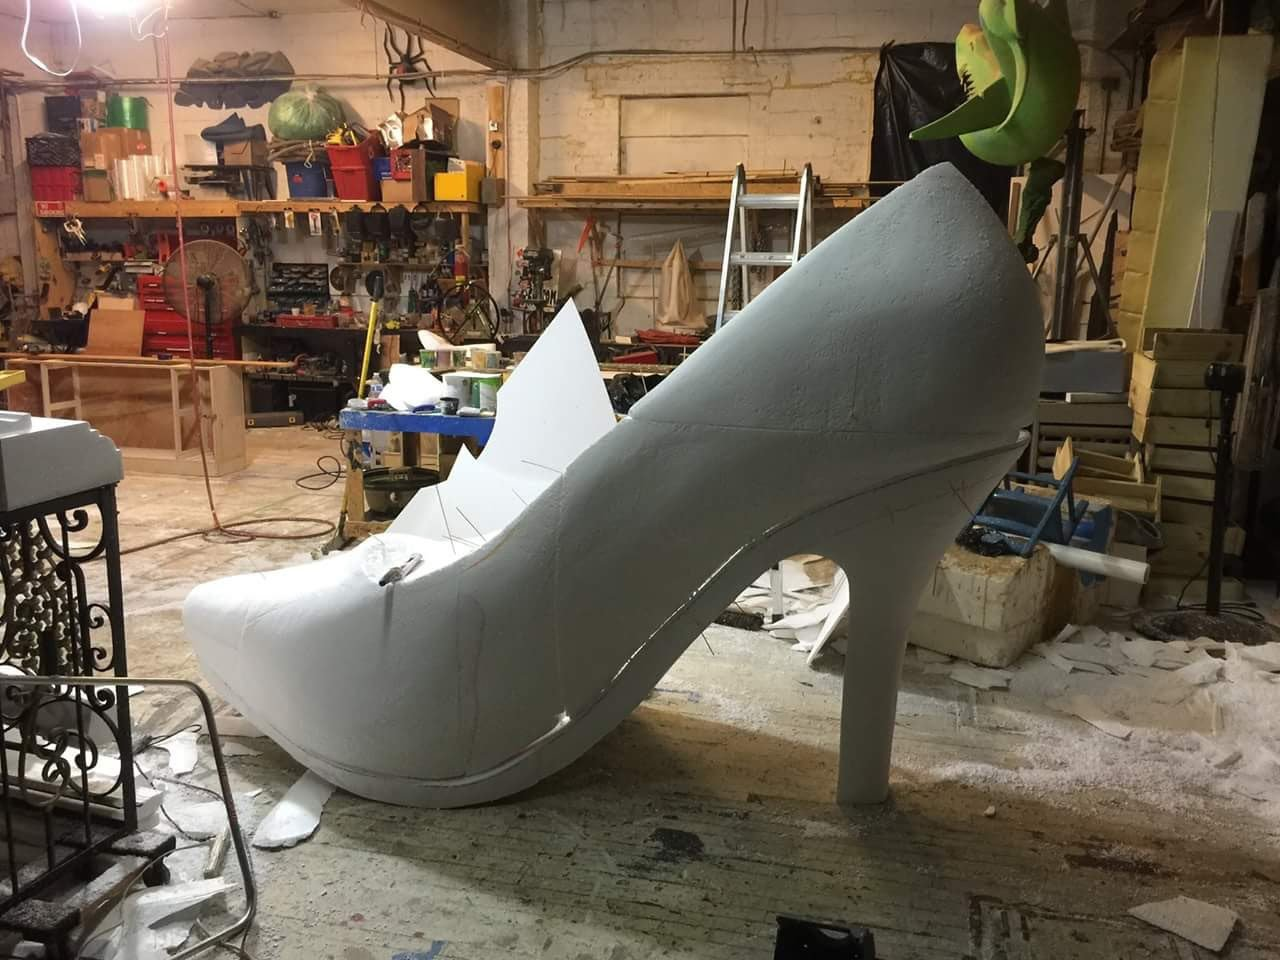 Oversized Stiletto Shoe for Beauty Event photo A0F01D06-8986-42F9-A238-4687F2B5CA30.jpg